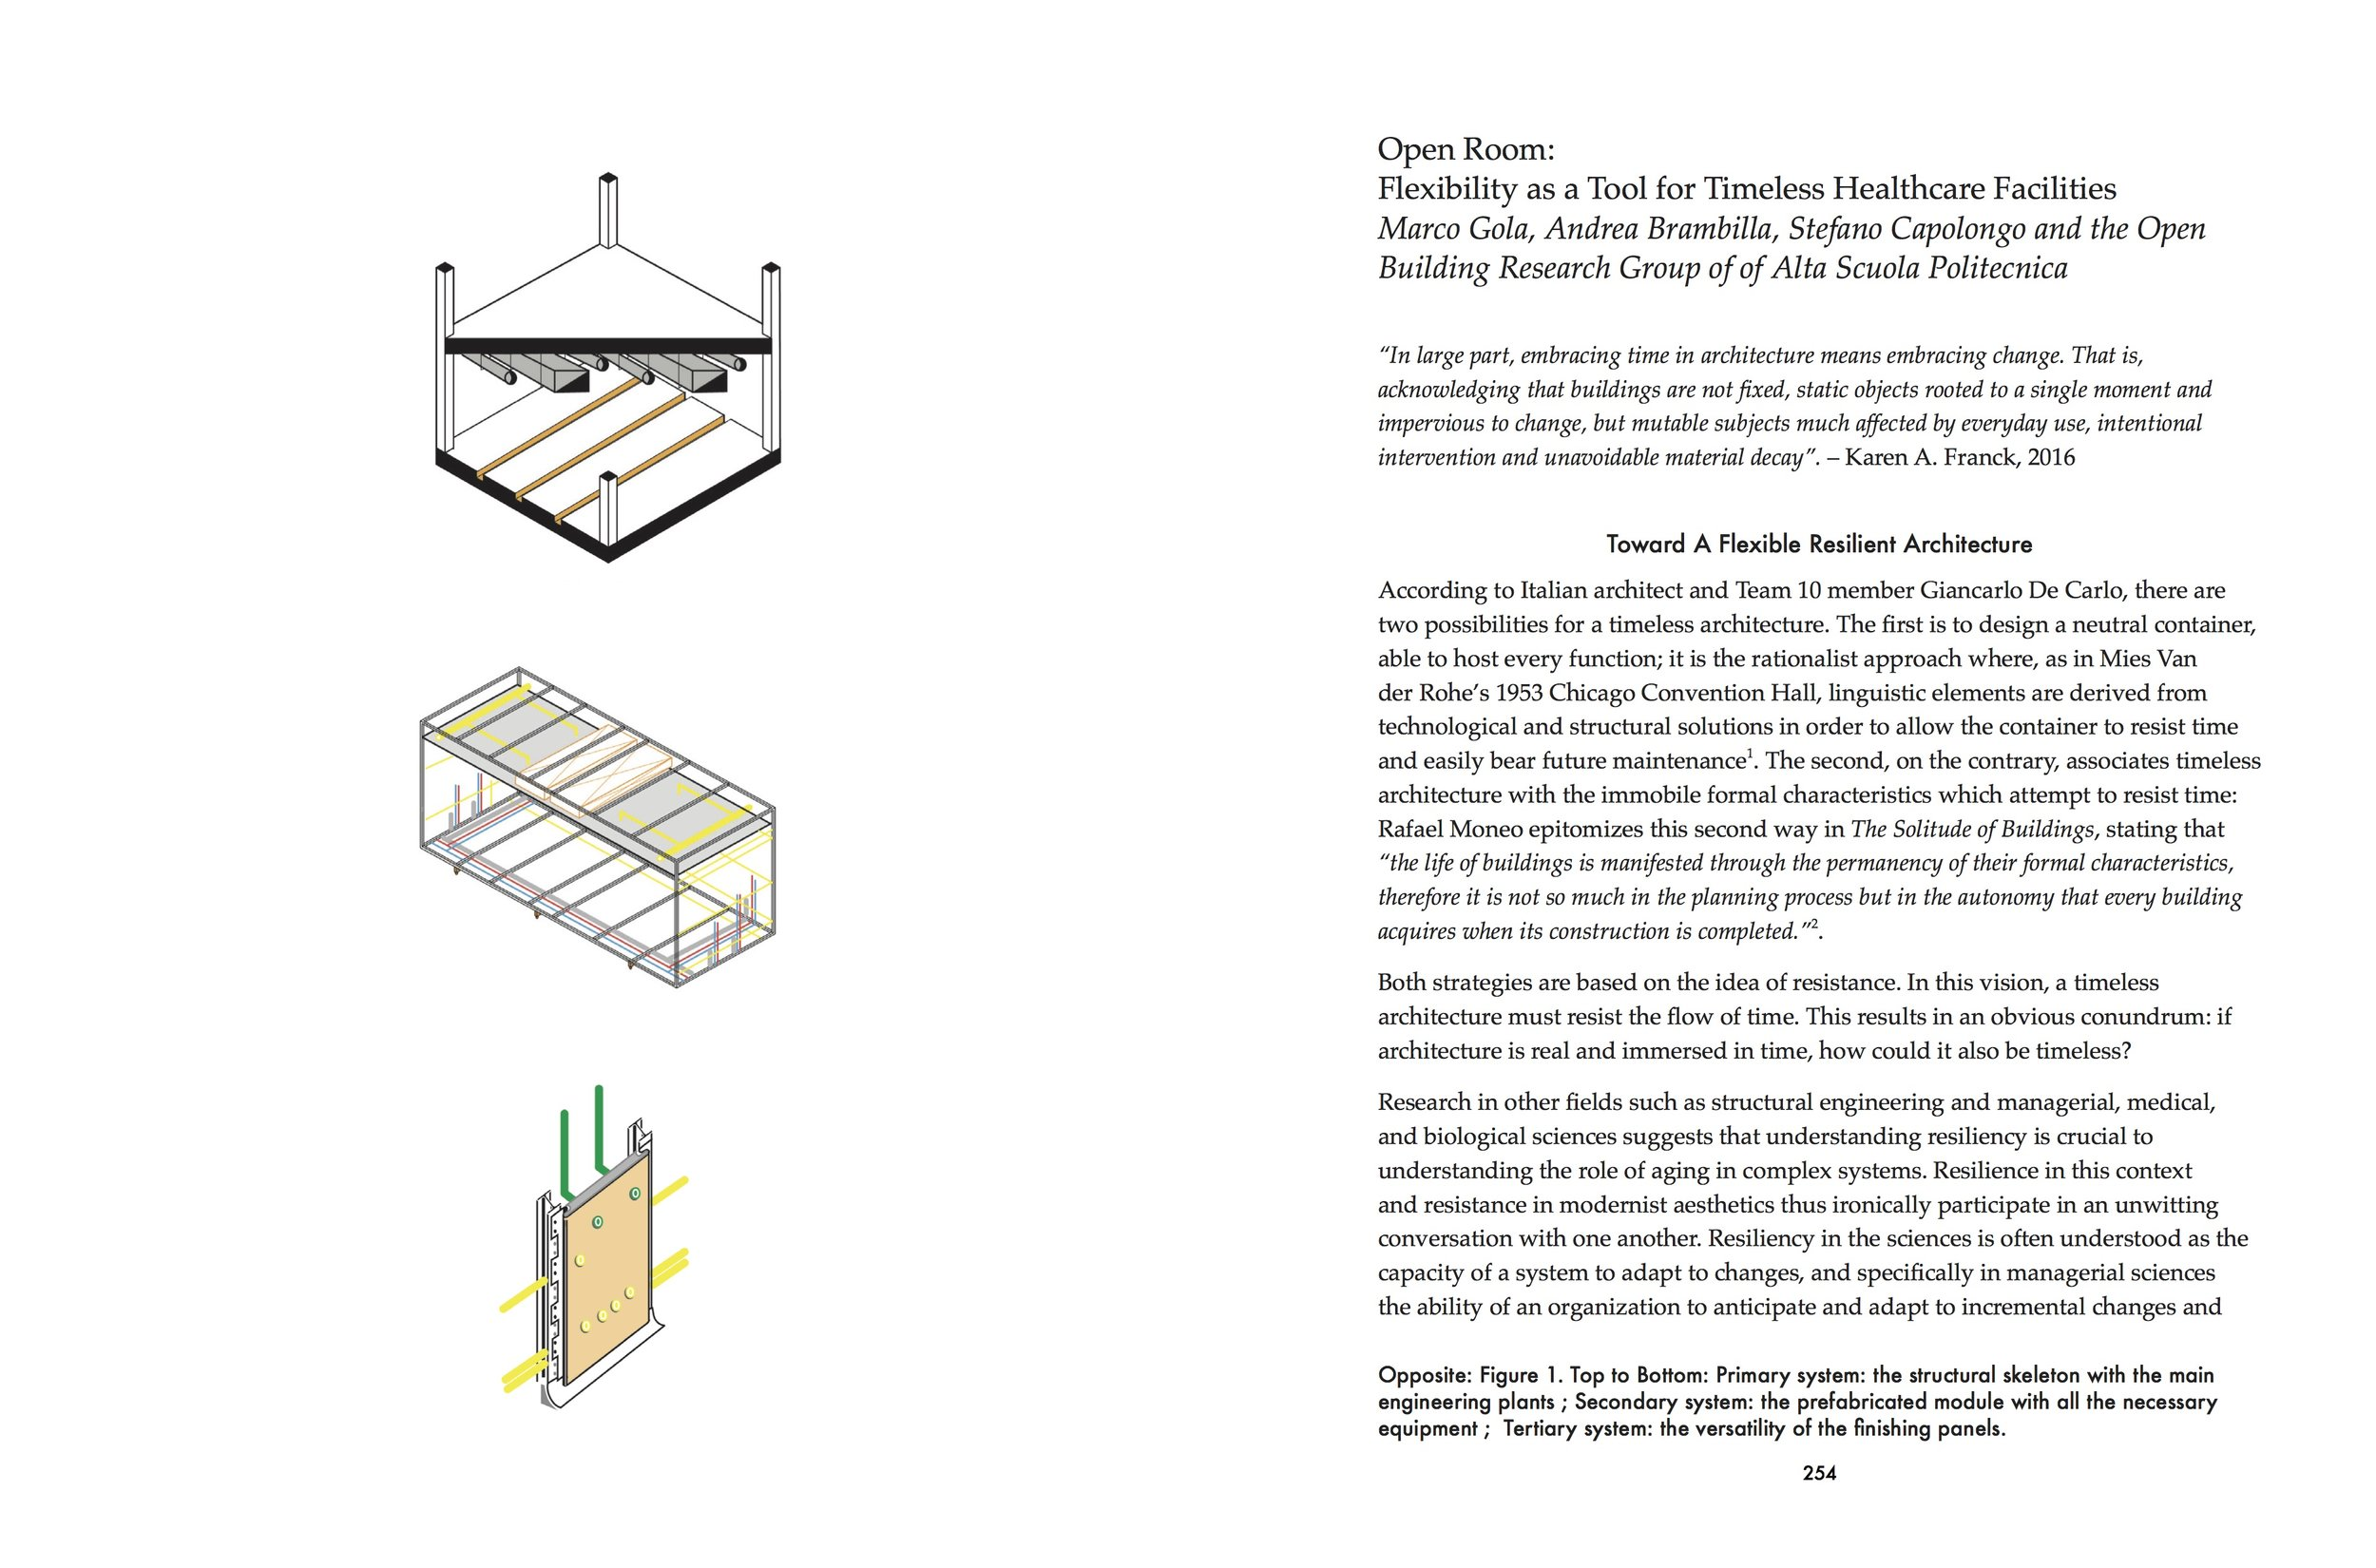 """""""Open Room"""" by Marco Gola, Andrea Brambilla, Stefano Capolongo and the Open Building Research Group."""